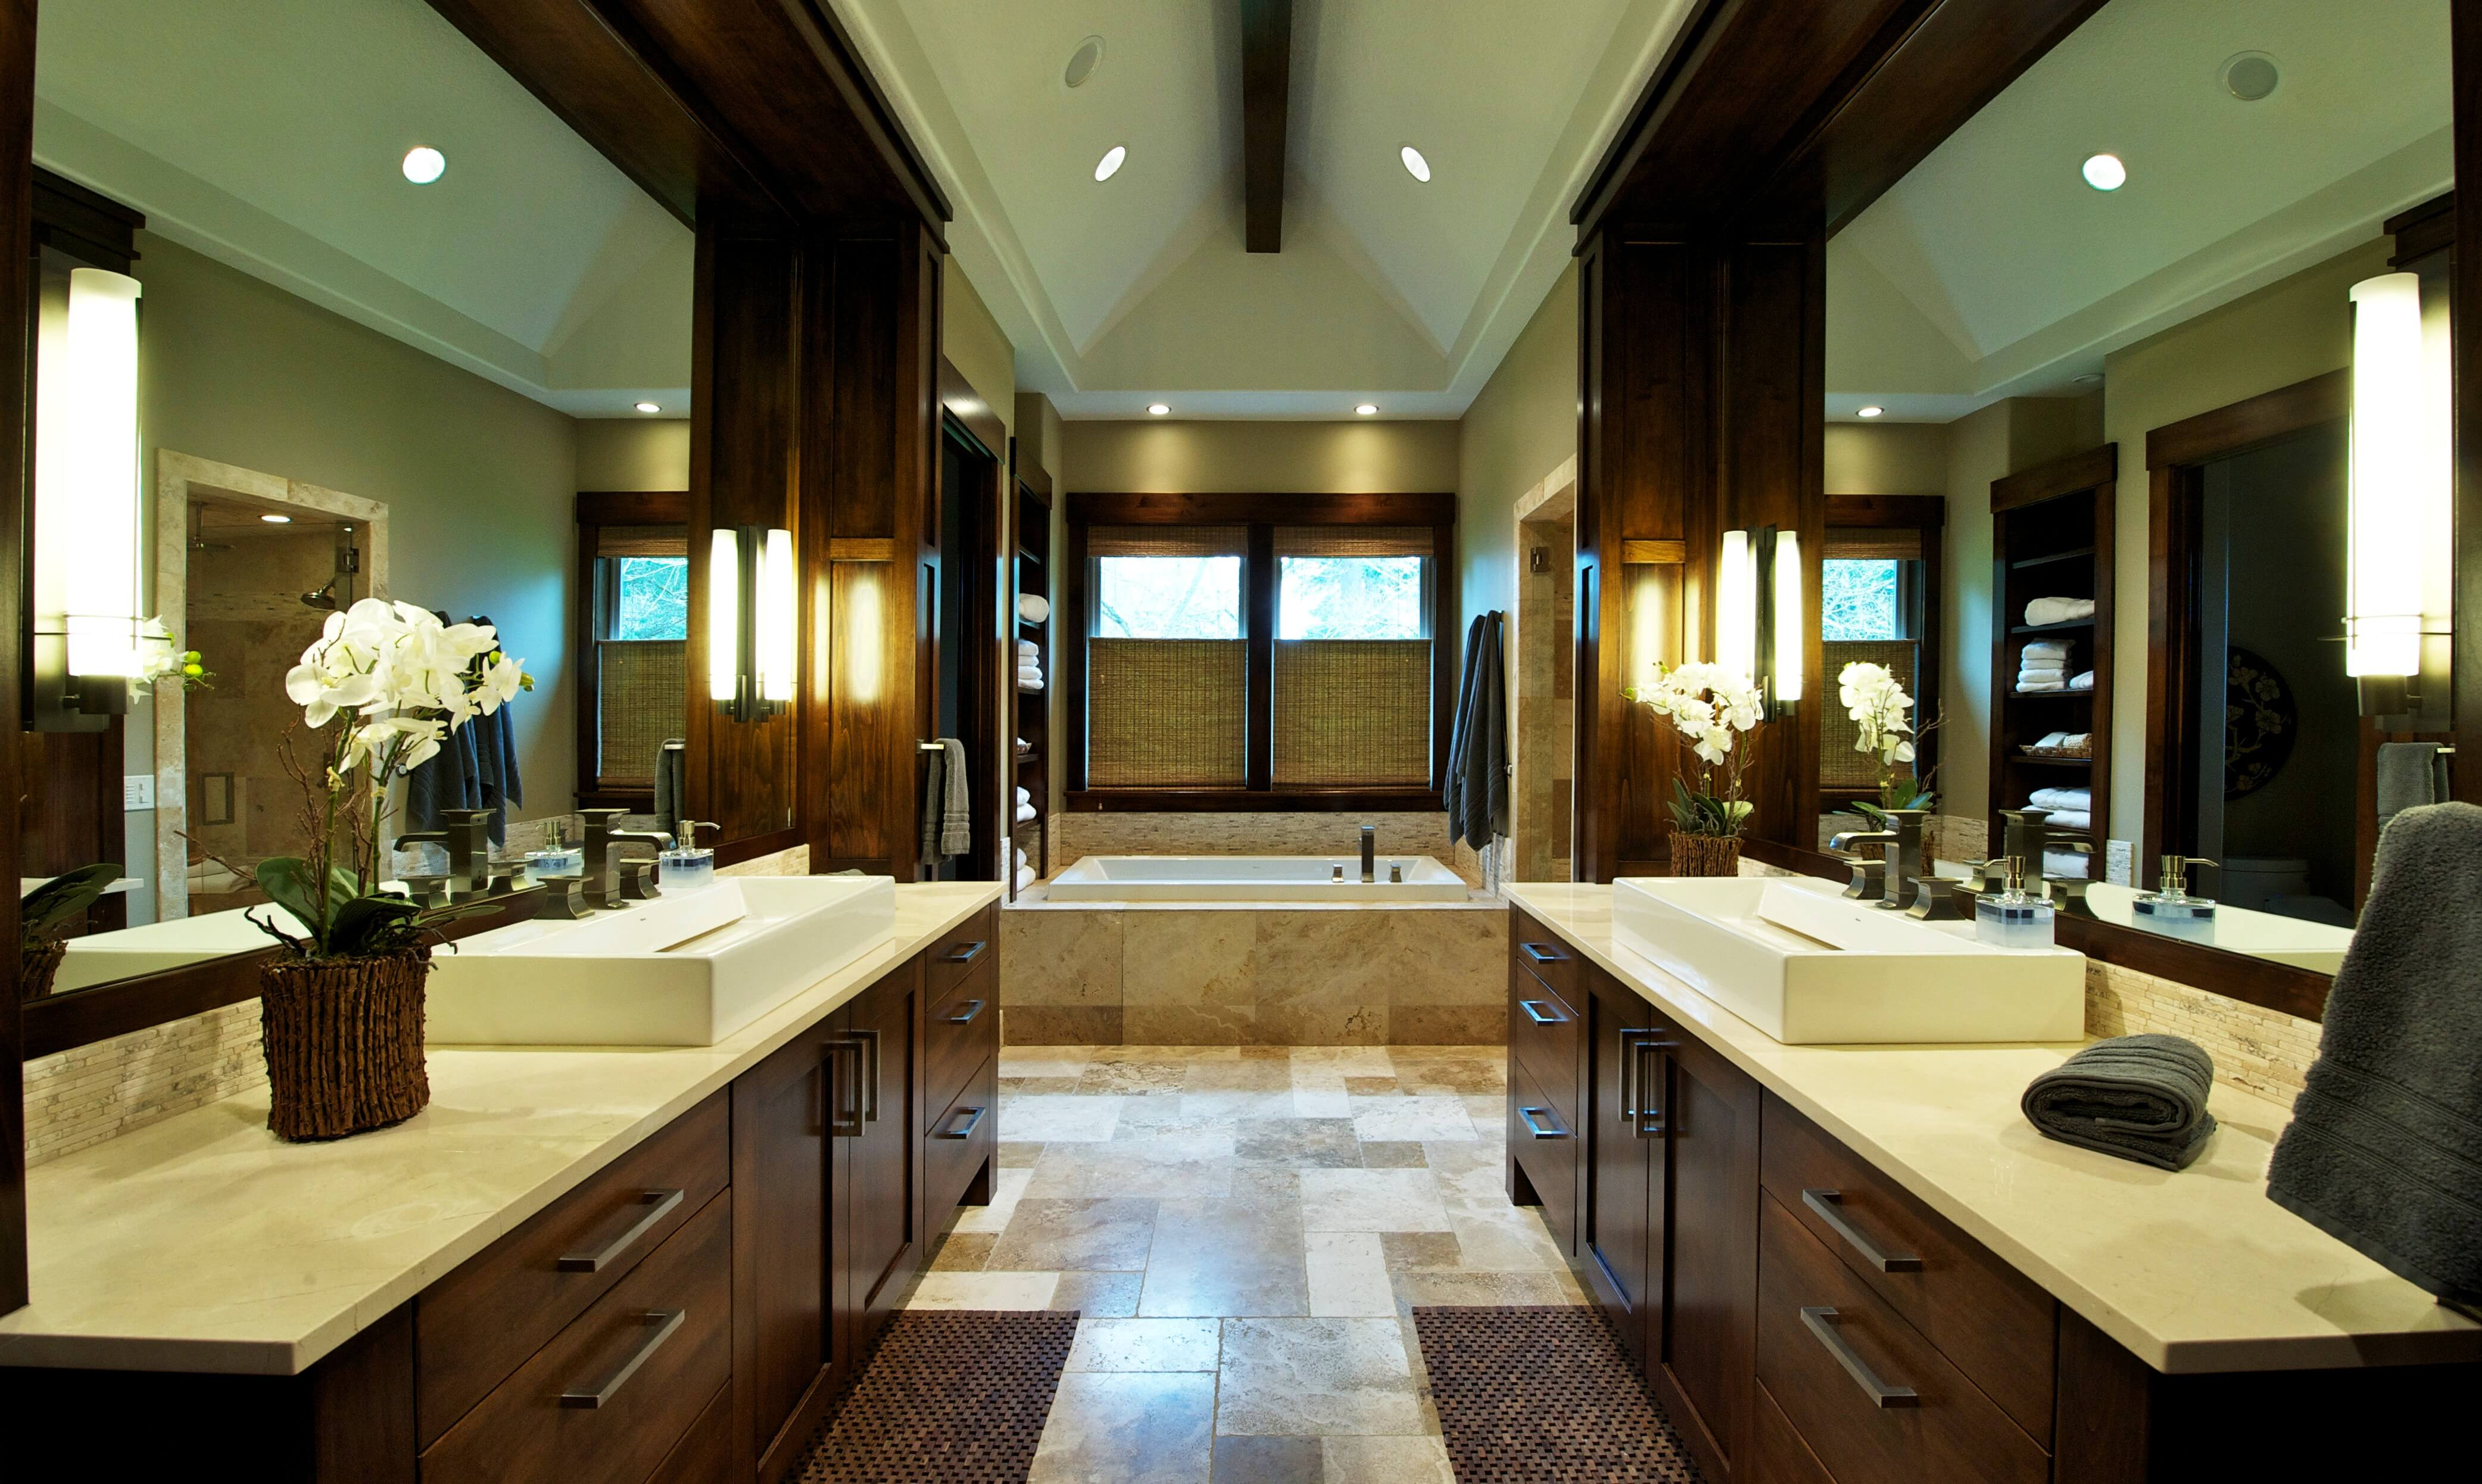 The primary bath is replete with twin rich, dark wood cabinetry and mirror surrounds over earth tone tile flooring with large bath in background. Single exposed beam runs down length of vaulted ceiling.